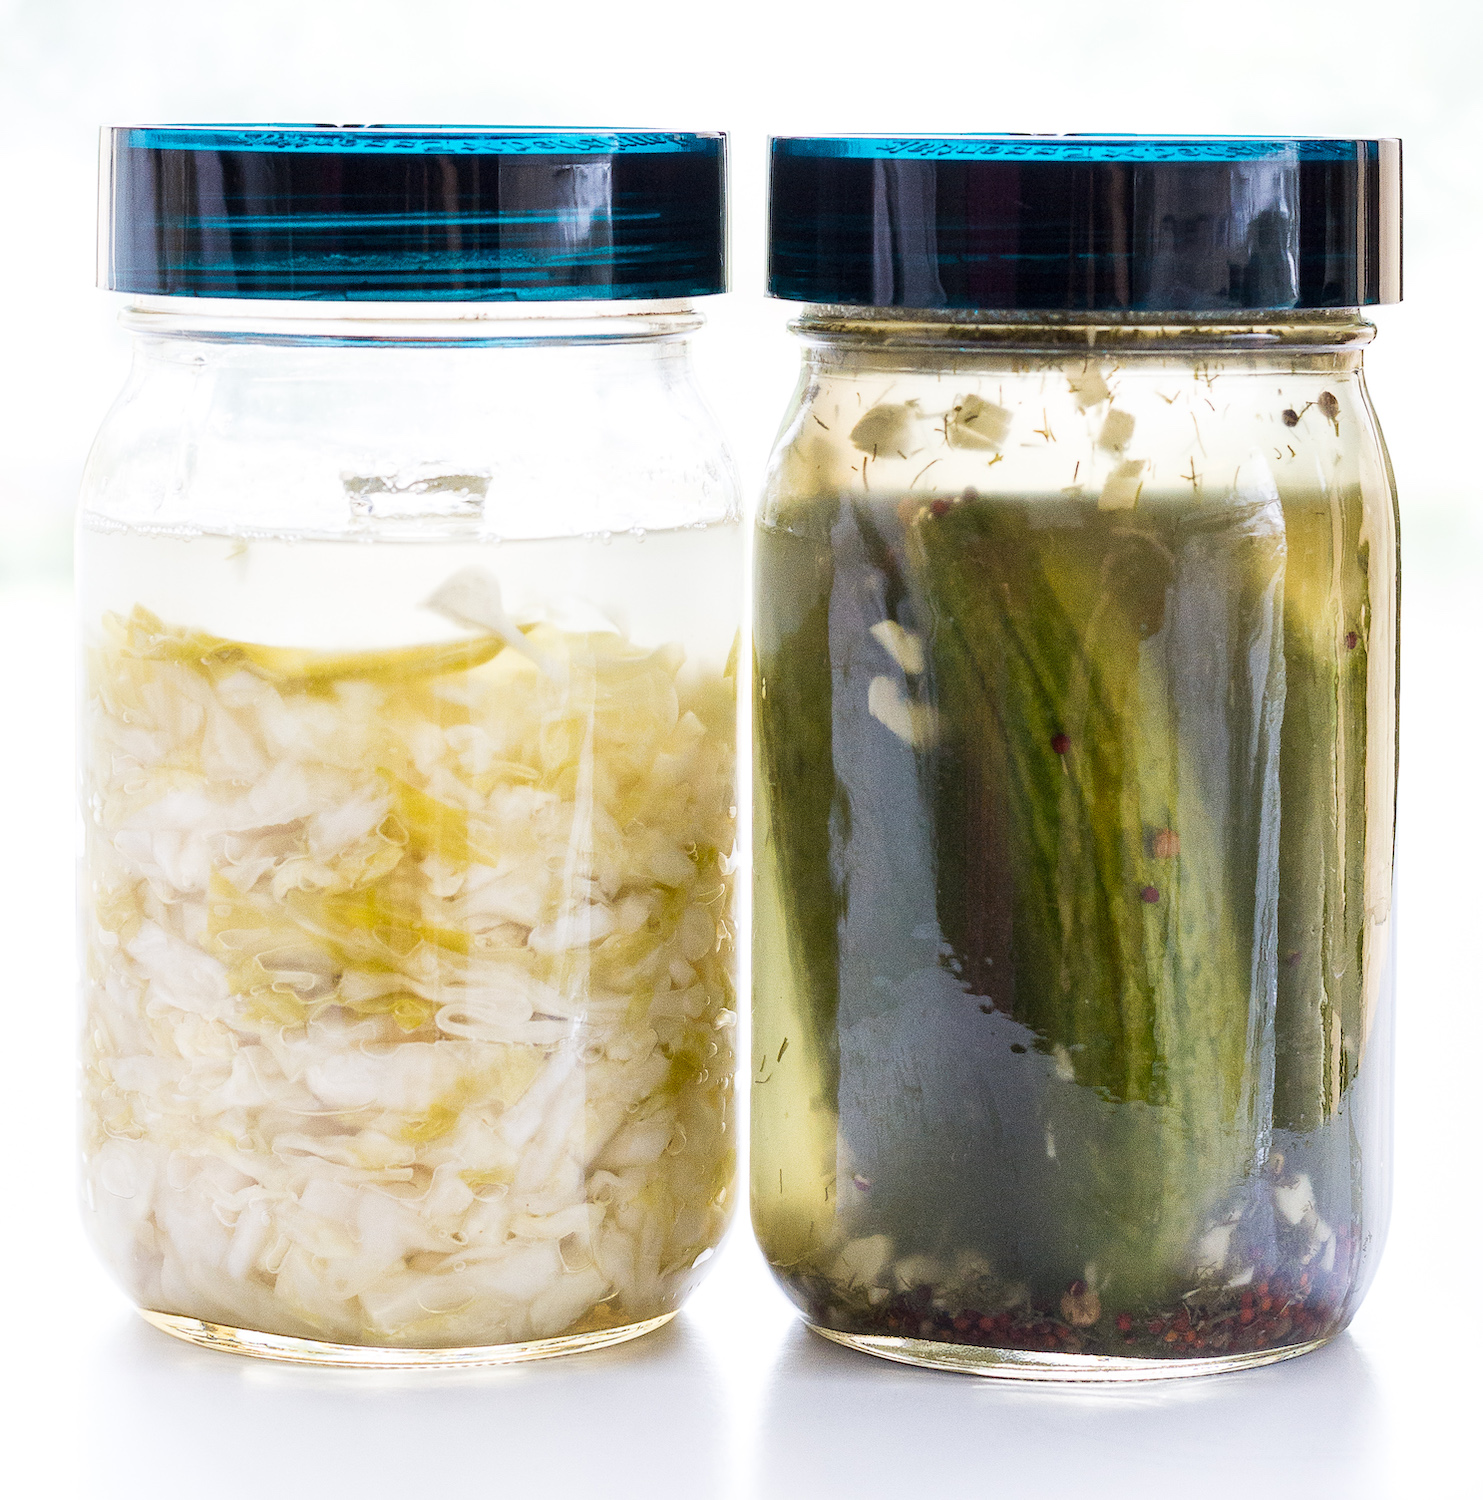 Day 7 and Day 4 Sauerkraut and Pickles by An Unrefined Vegan